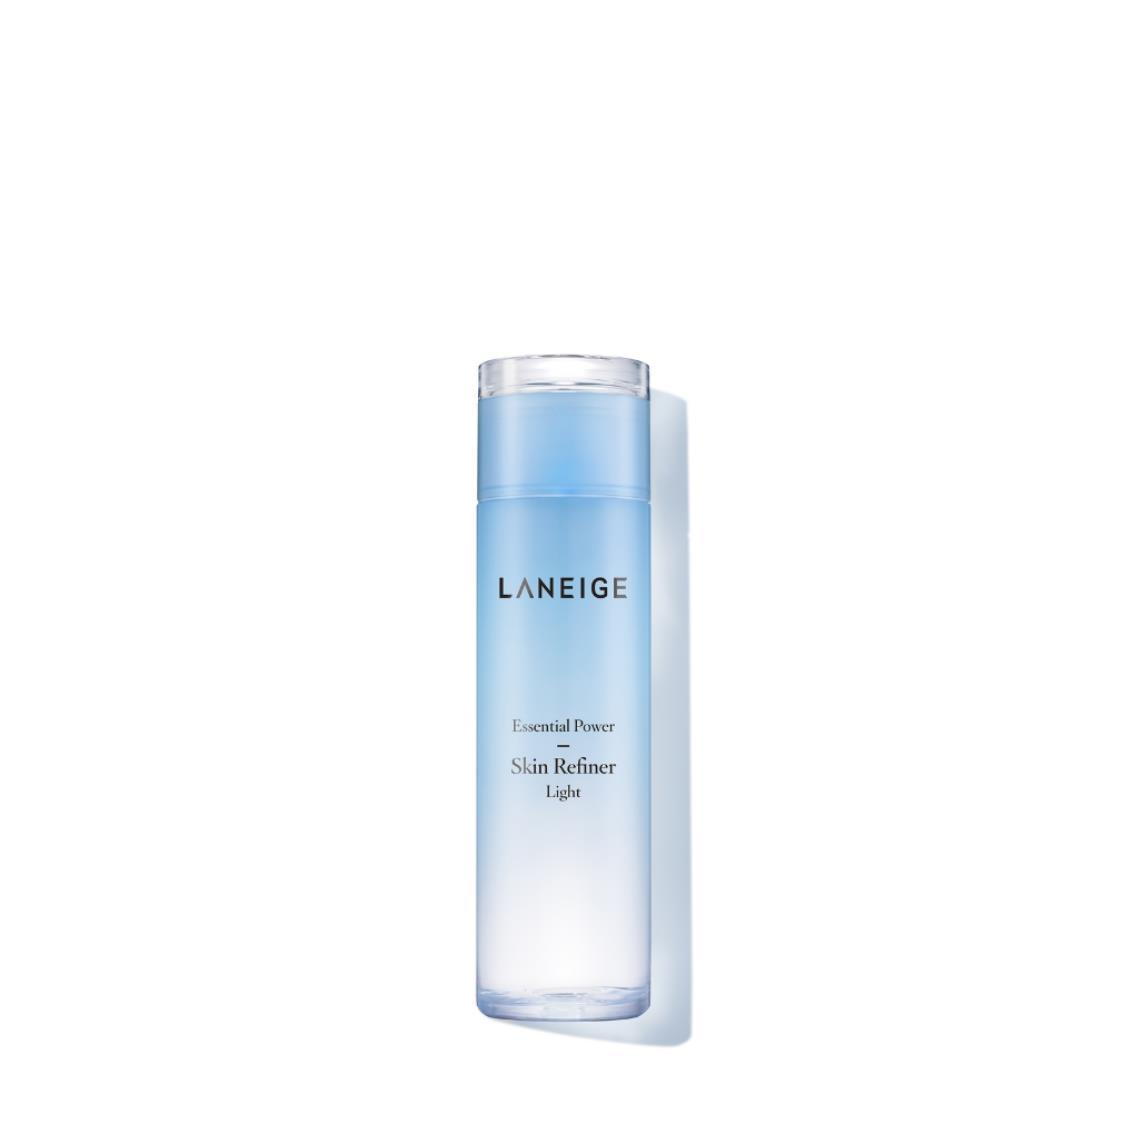 Essential Power Skin Refiner Light 200ml